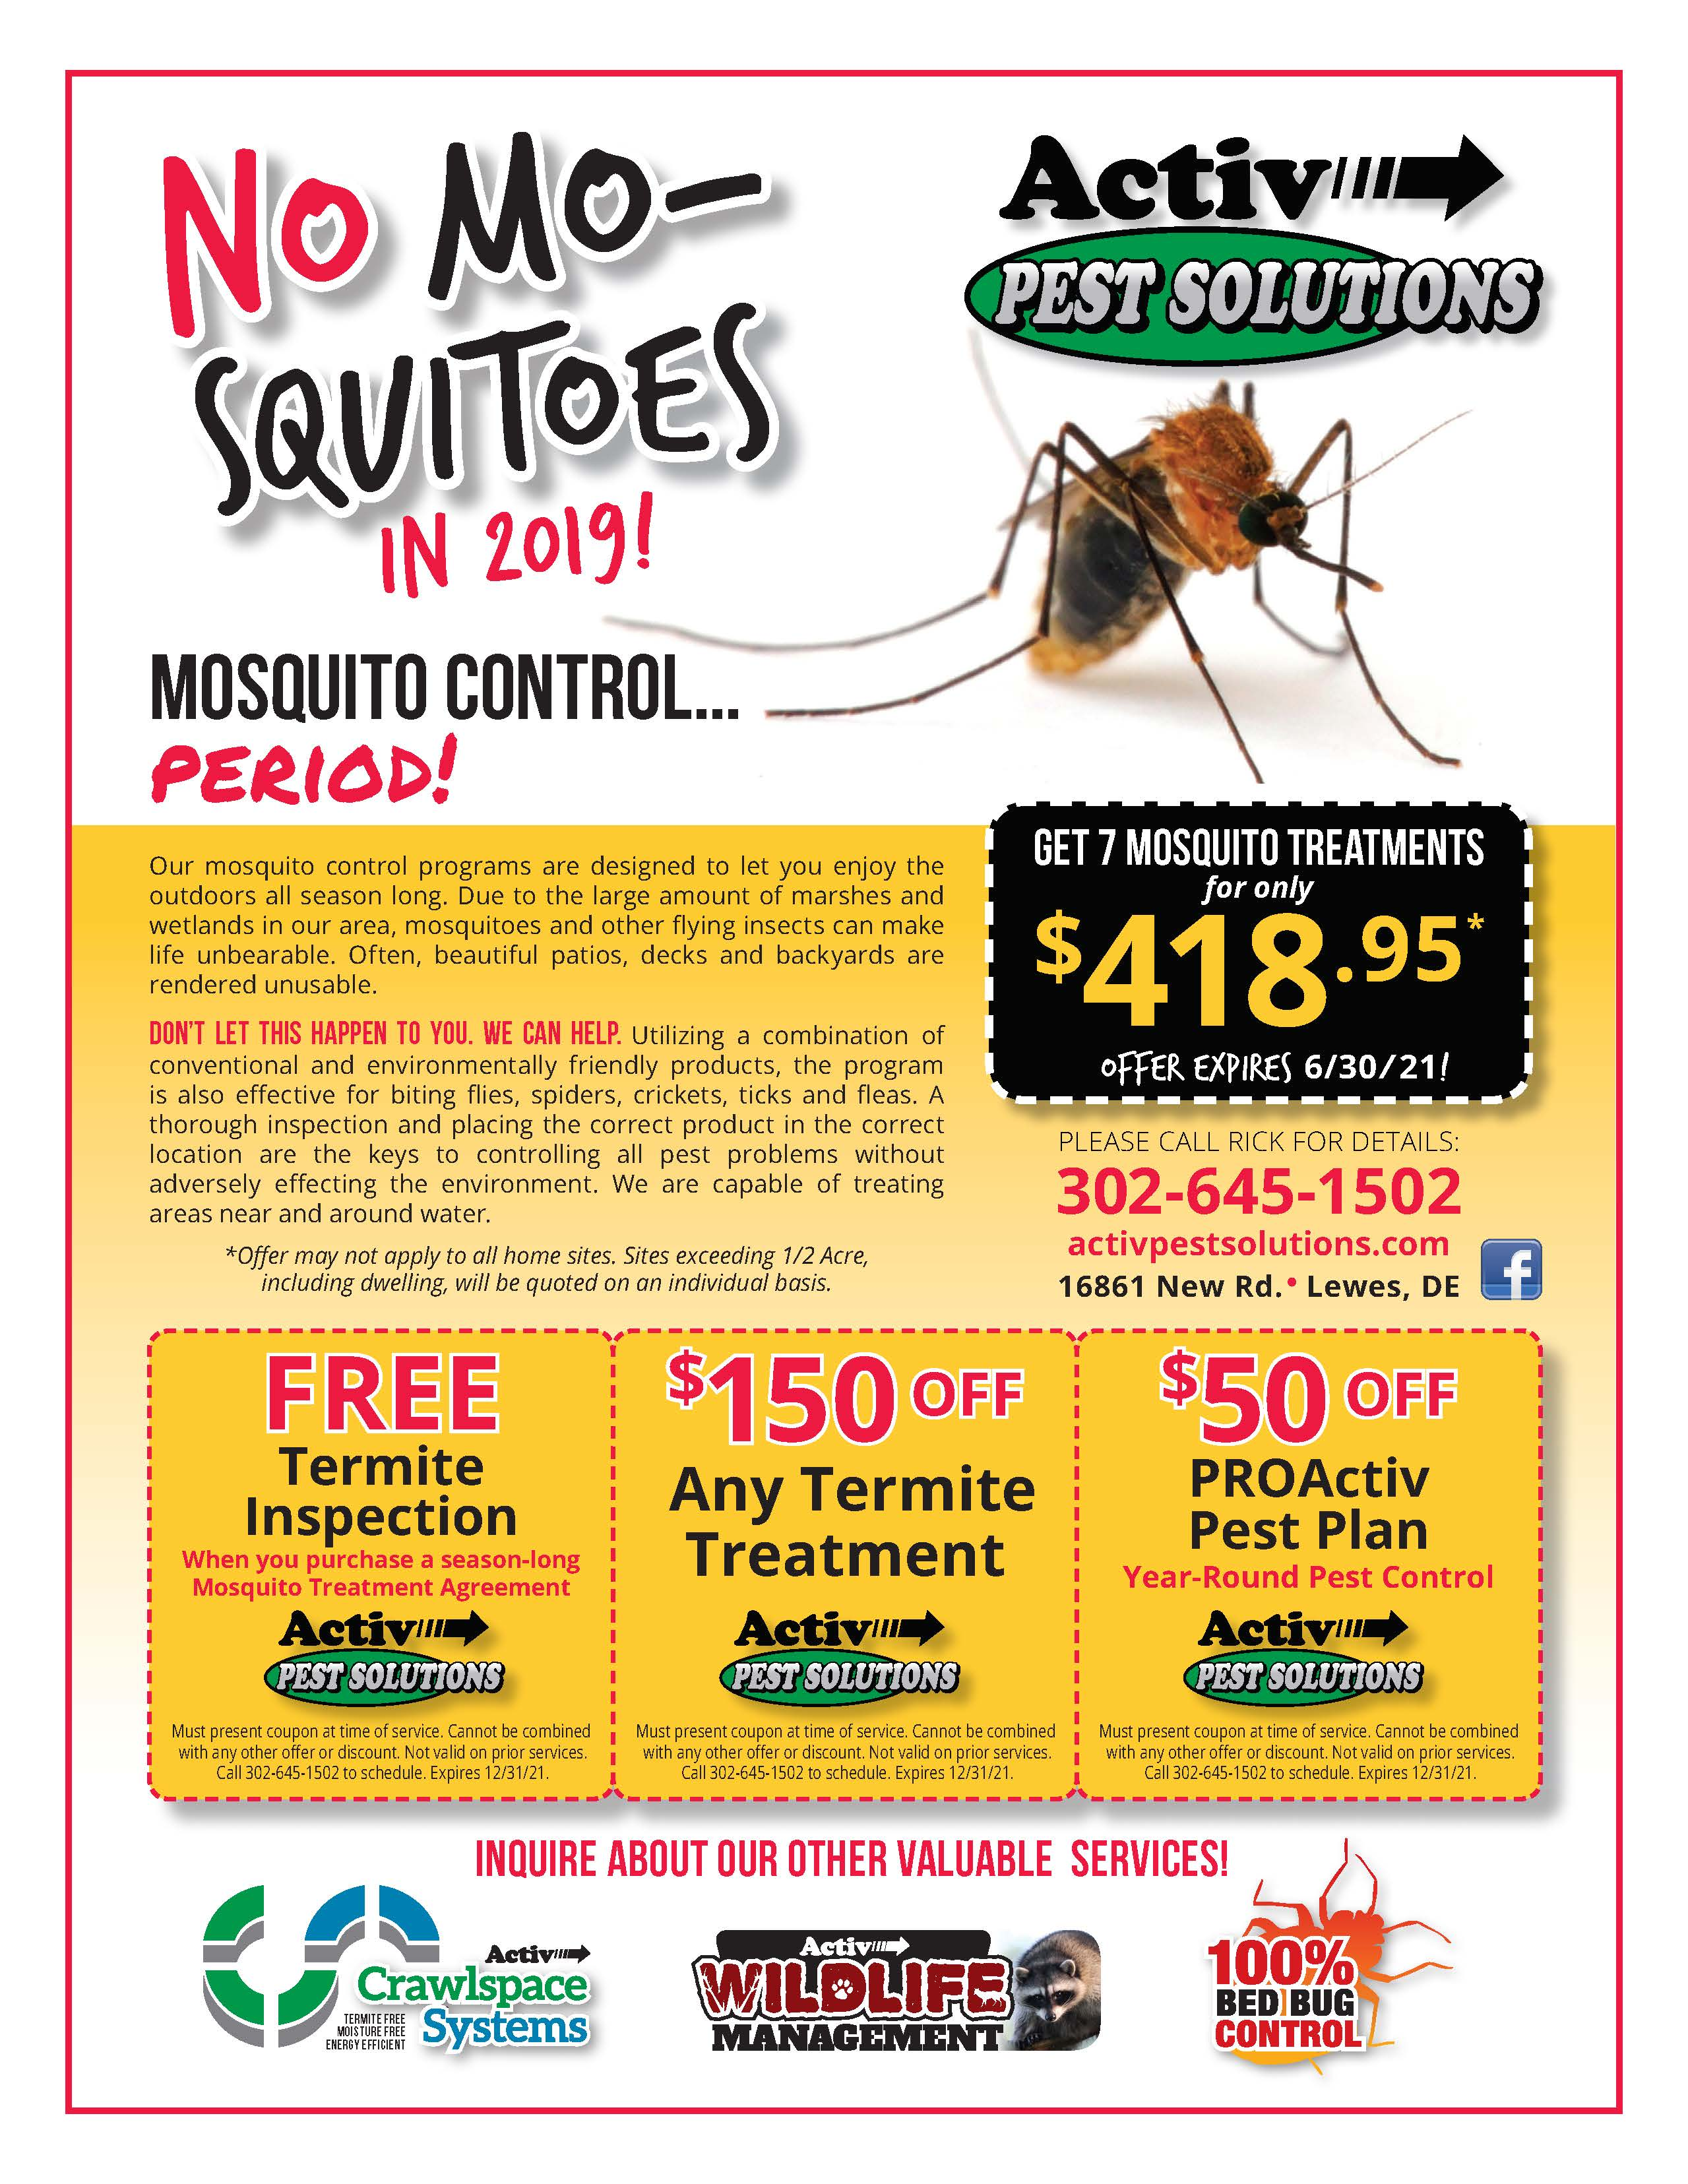 NoMo-squito discount flyer valid until June 30, 2020